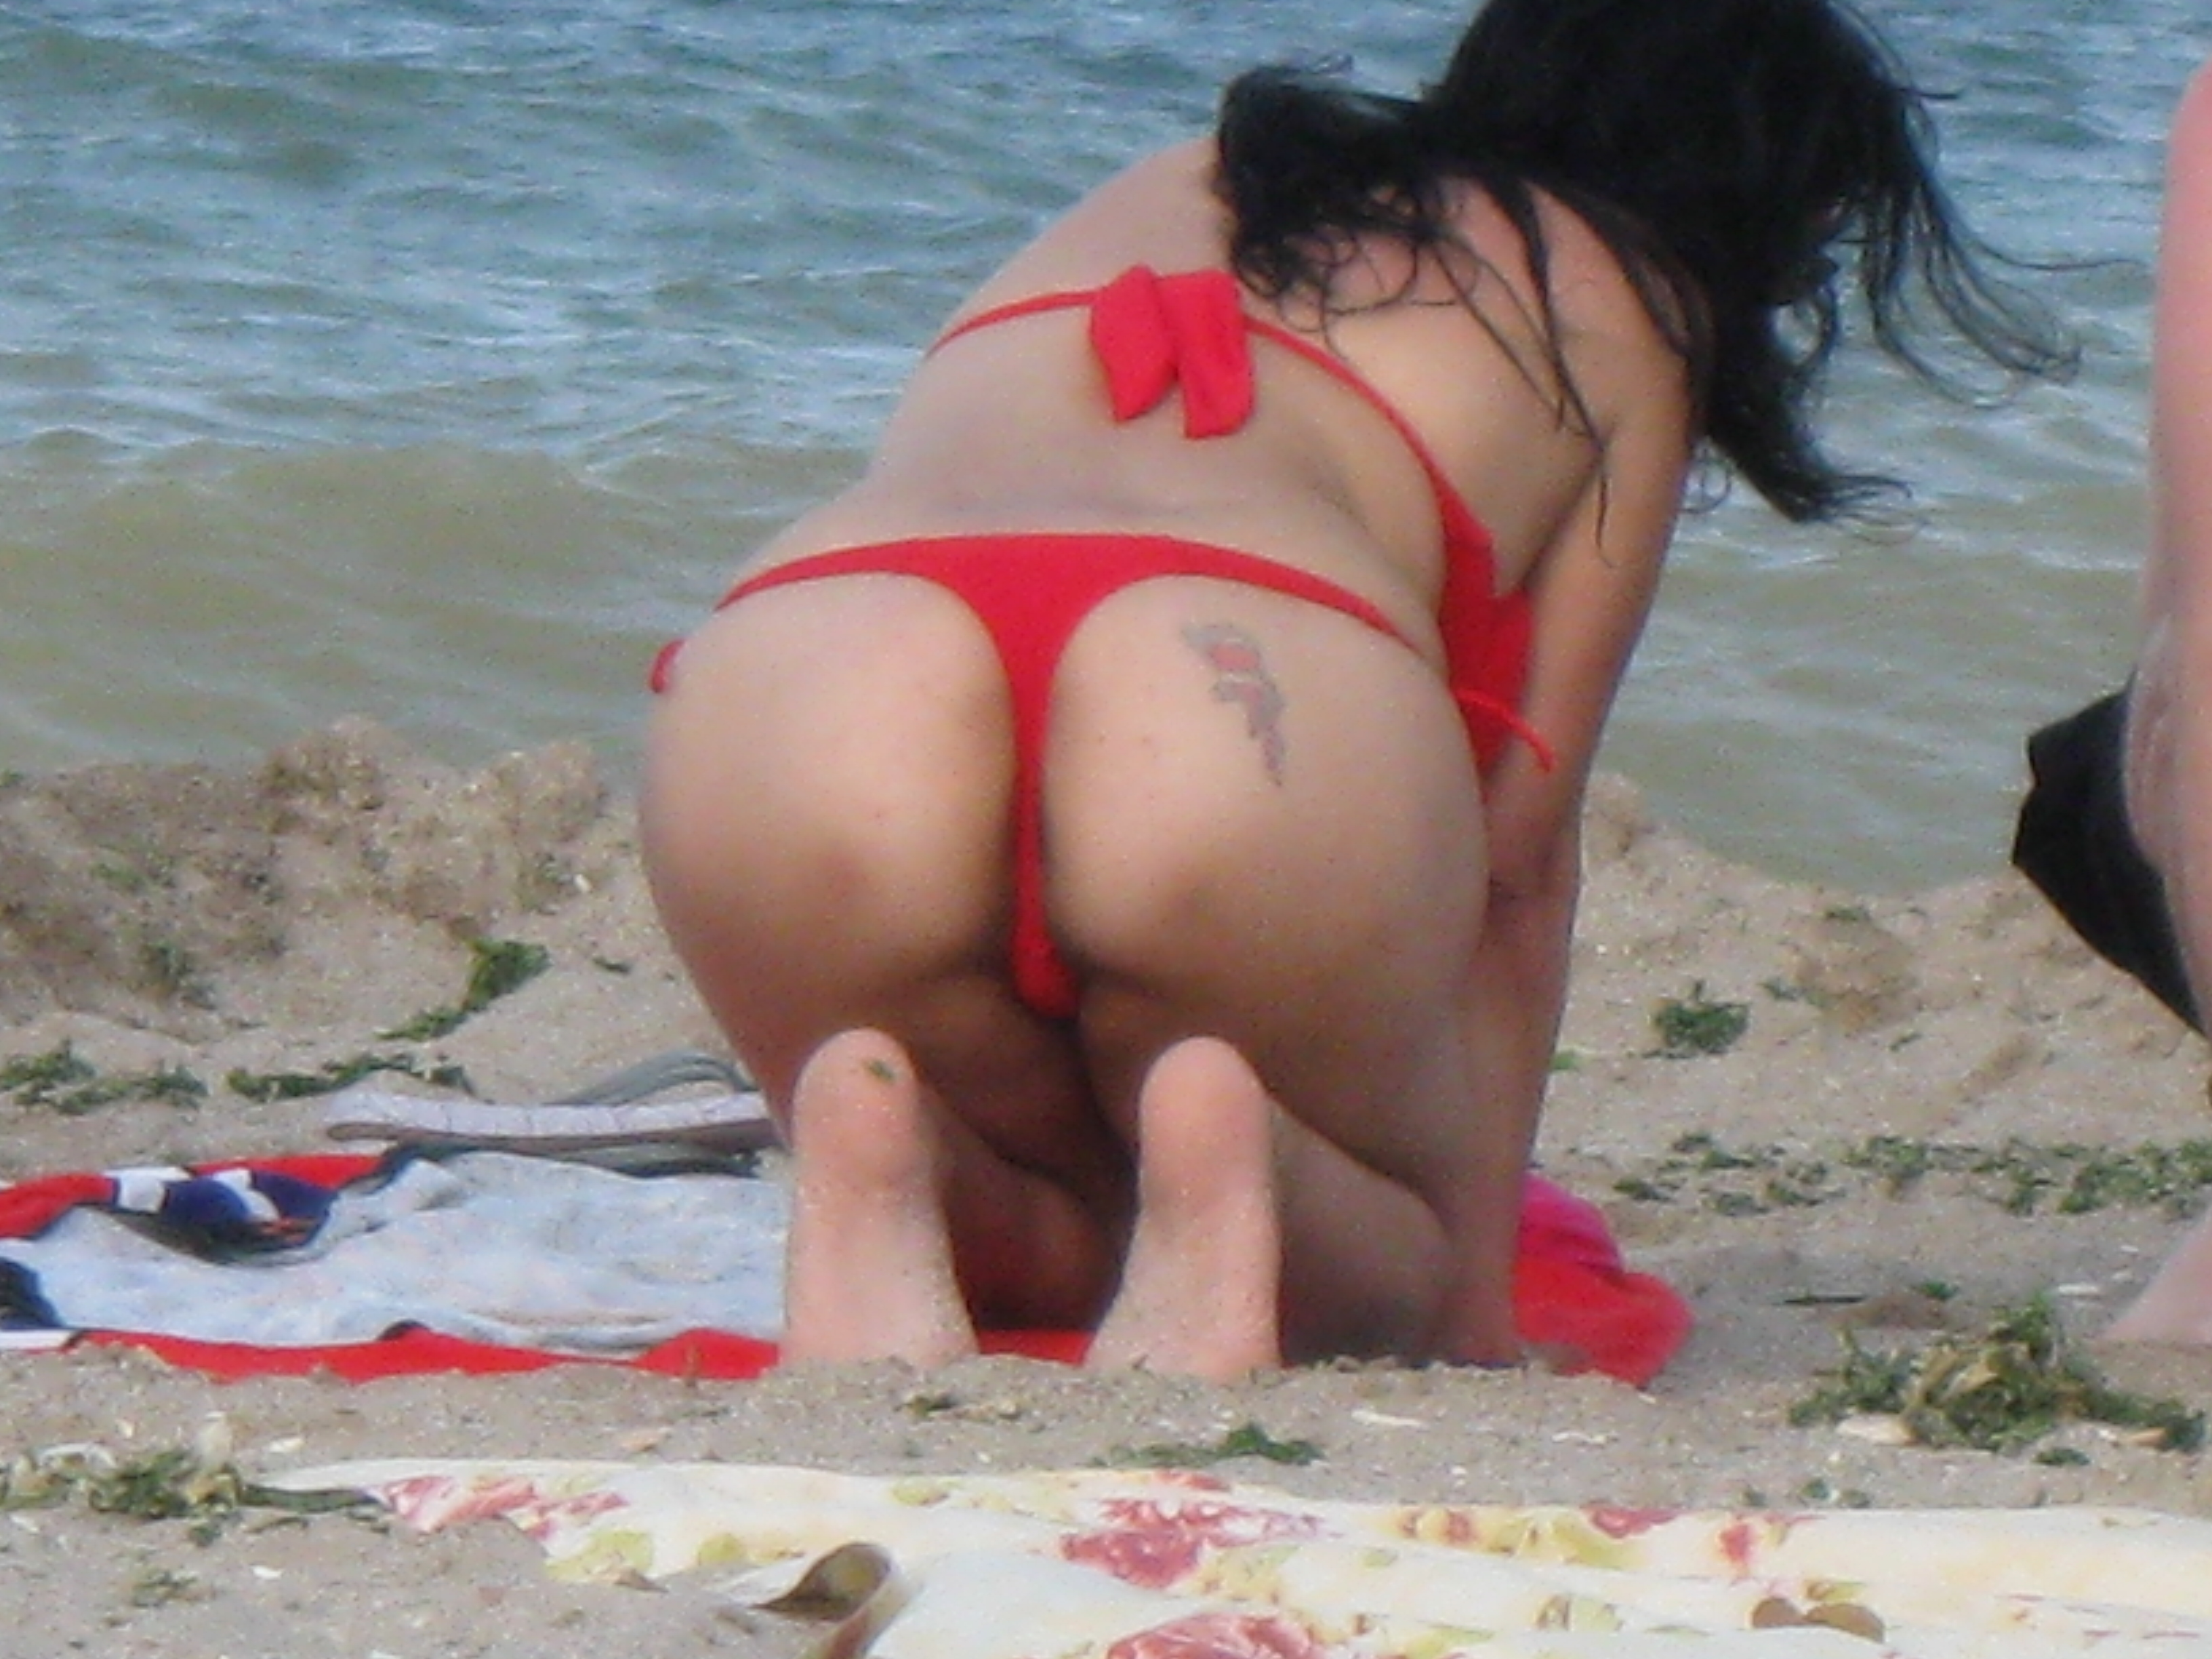 These bikini thongs draw attention to her nice tattooed ass